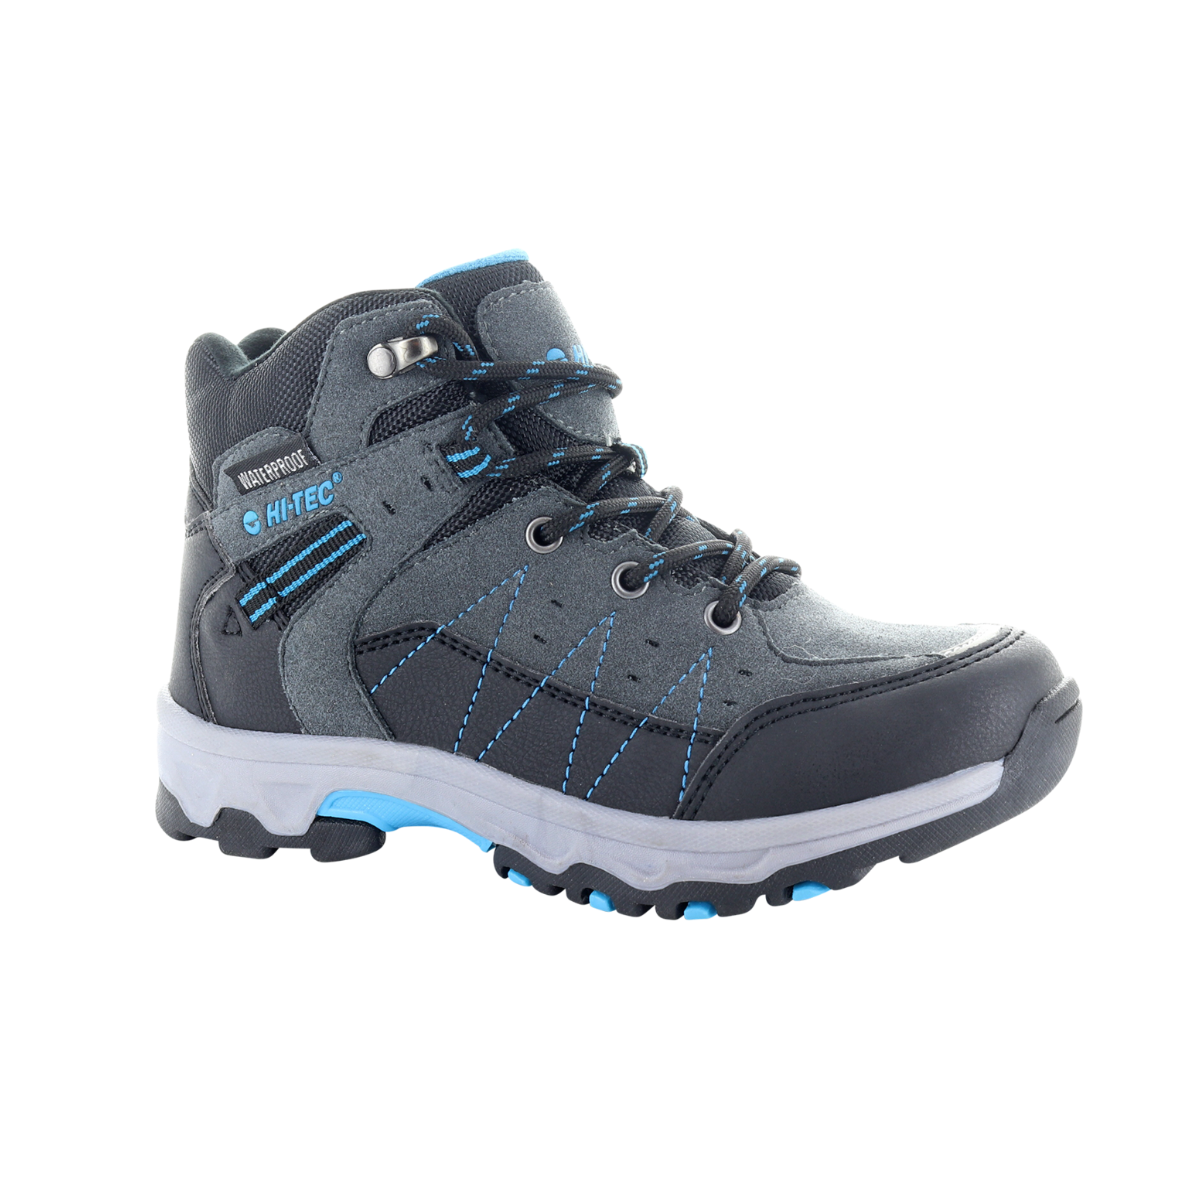 HiTec Shield Waterproof Comfortable Quality Junior Hiking Stiefel